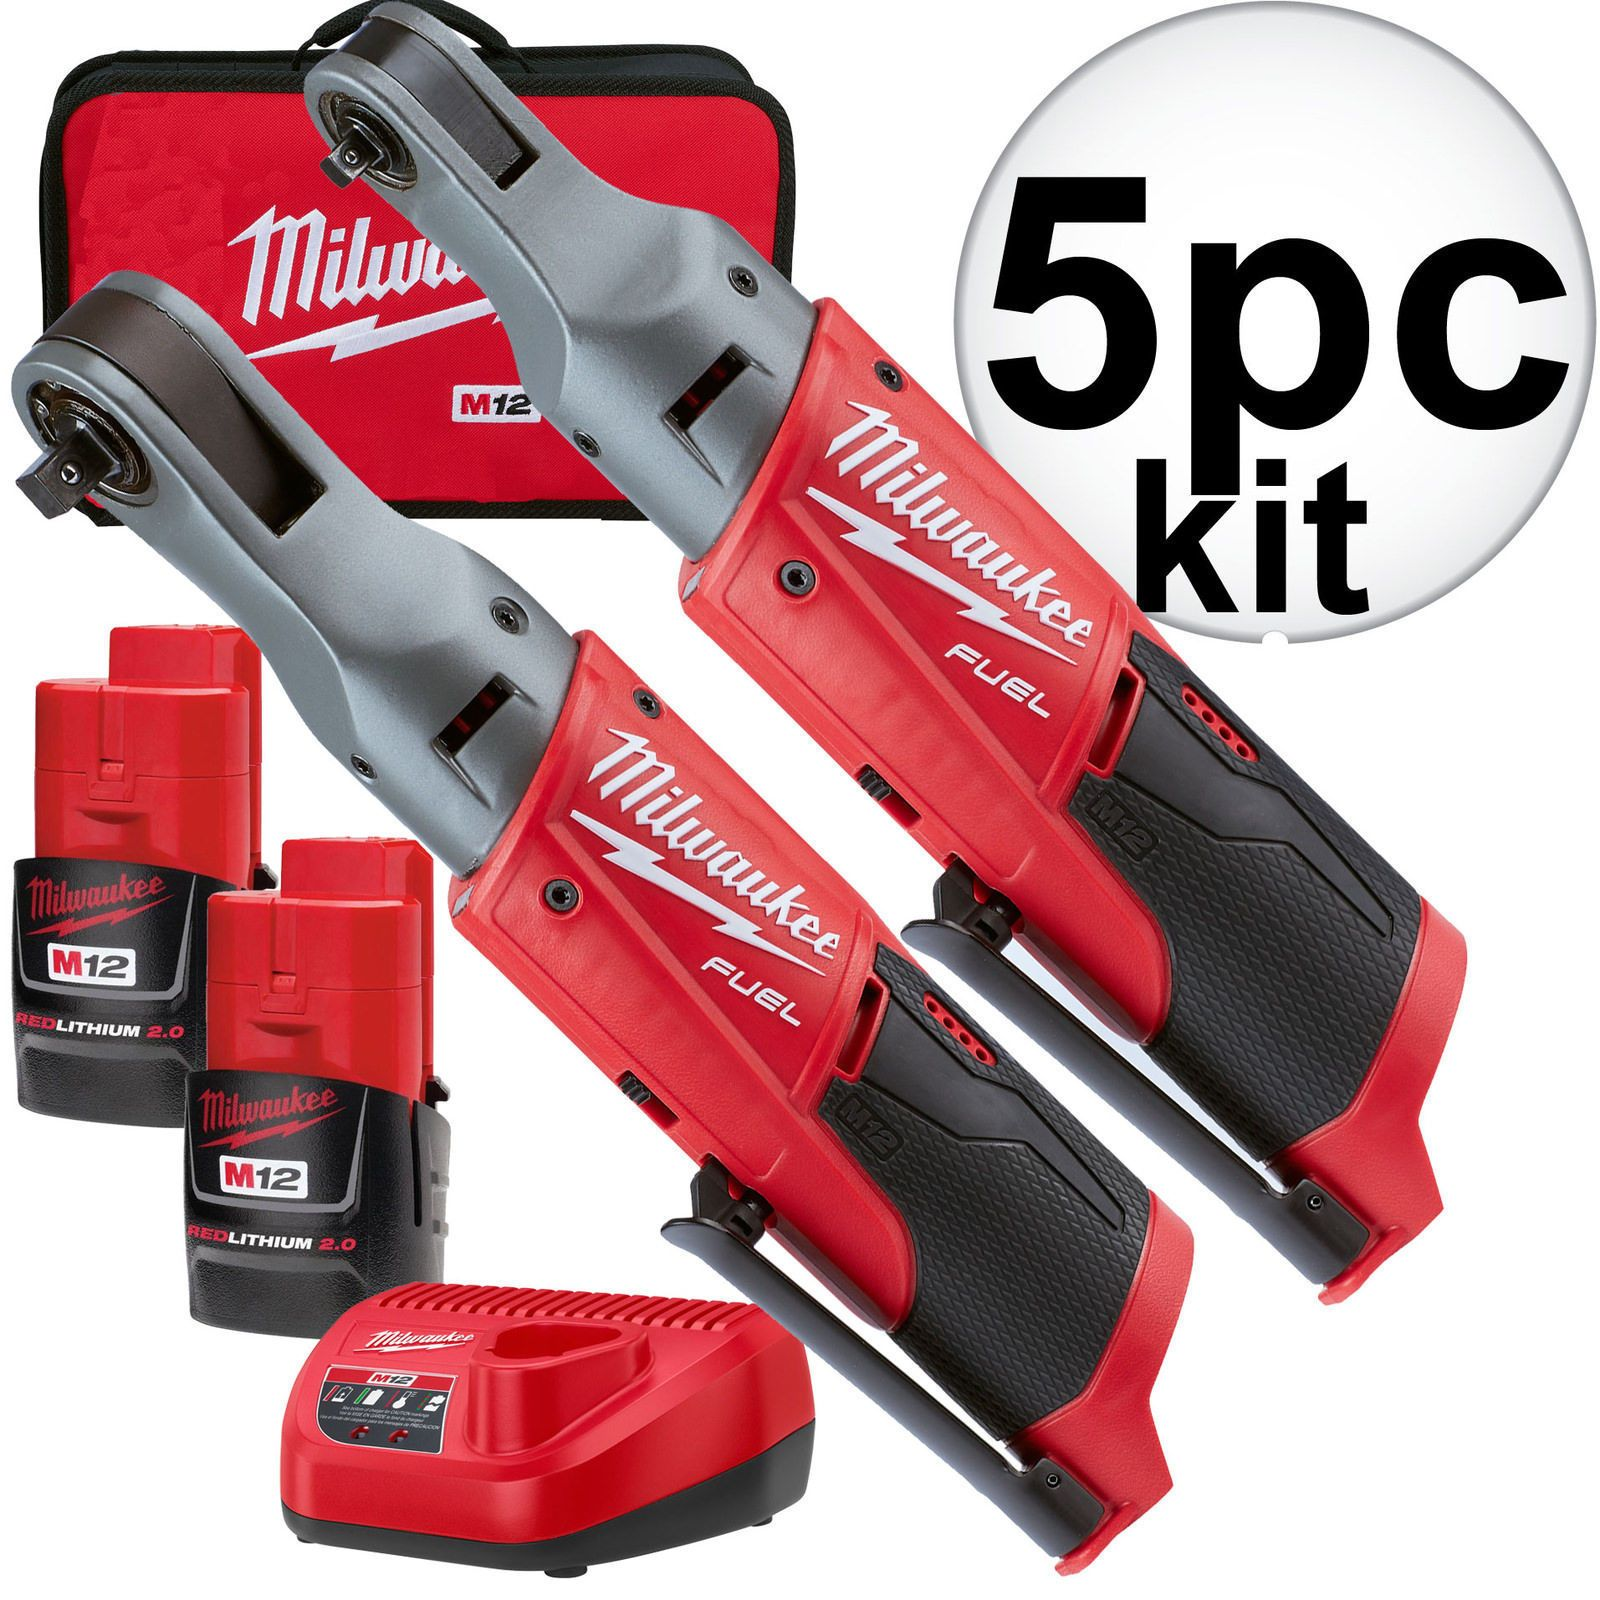 Milwaukee 2556 22 M12 Fuel 12v Cordless 1 4 3 8 Ratchet 2 Battery Kit New Milwaukee Fuel Gutter Cleaning Tool Impact Wrenches